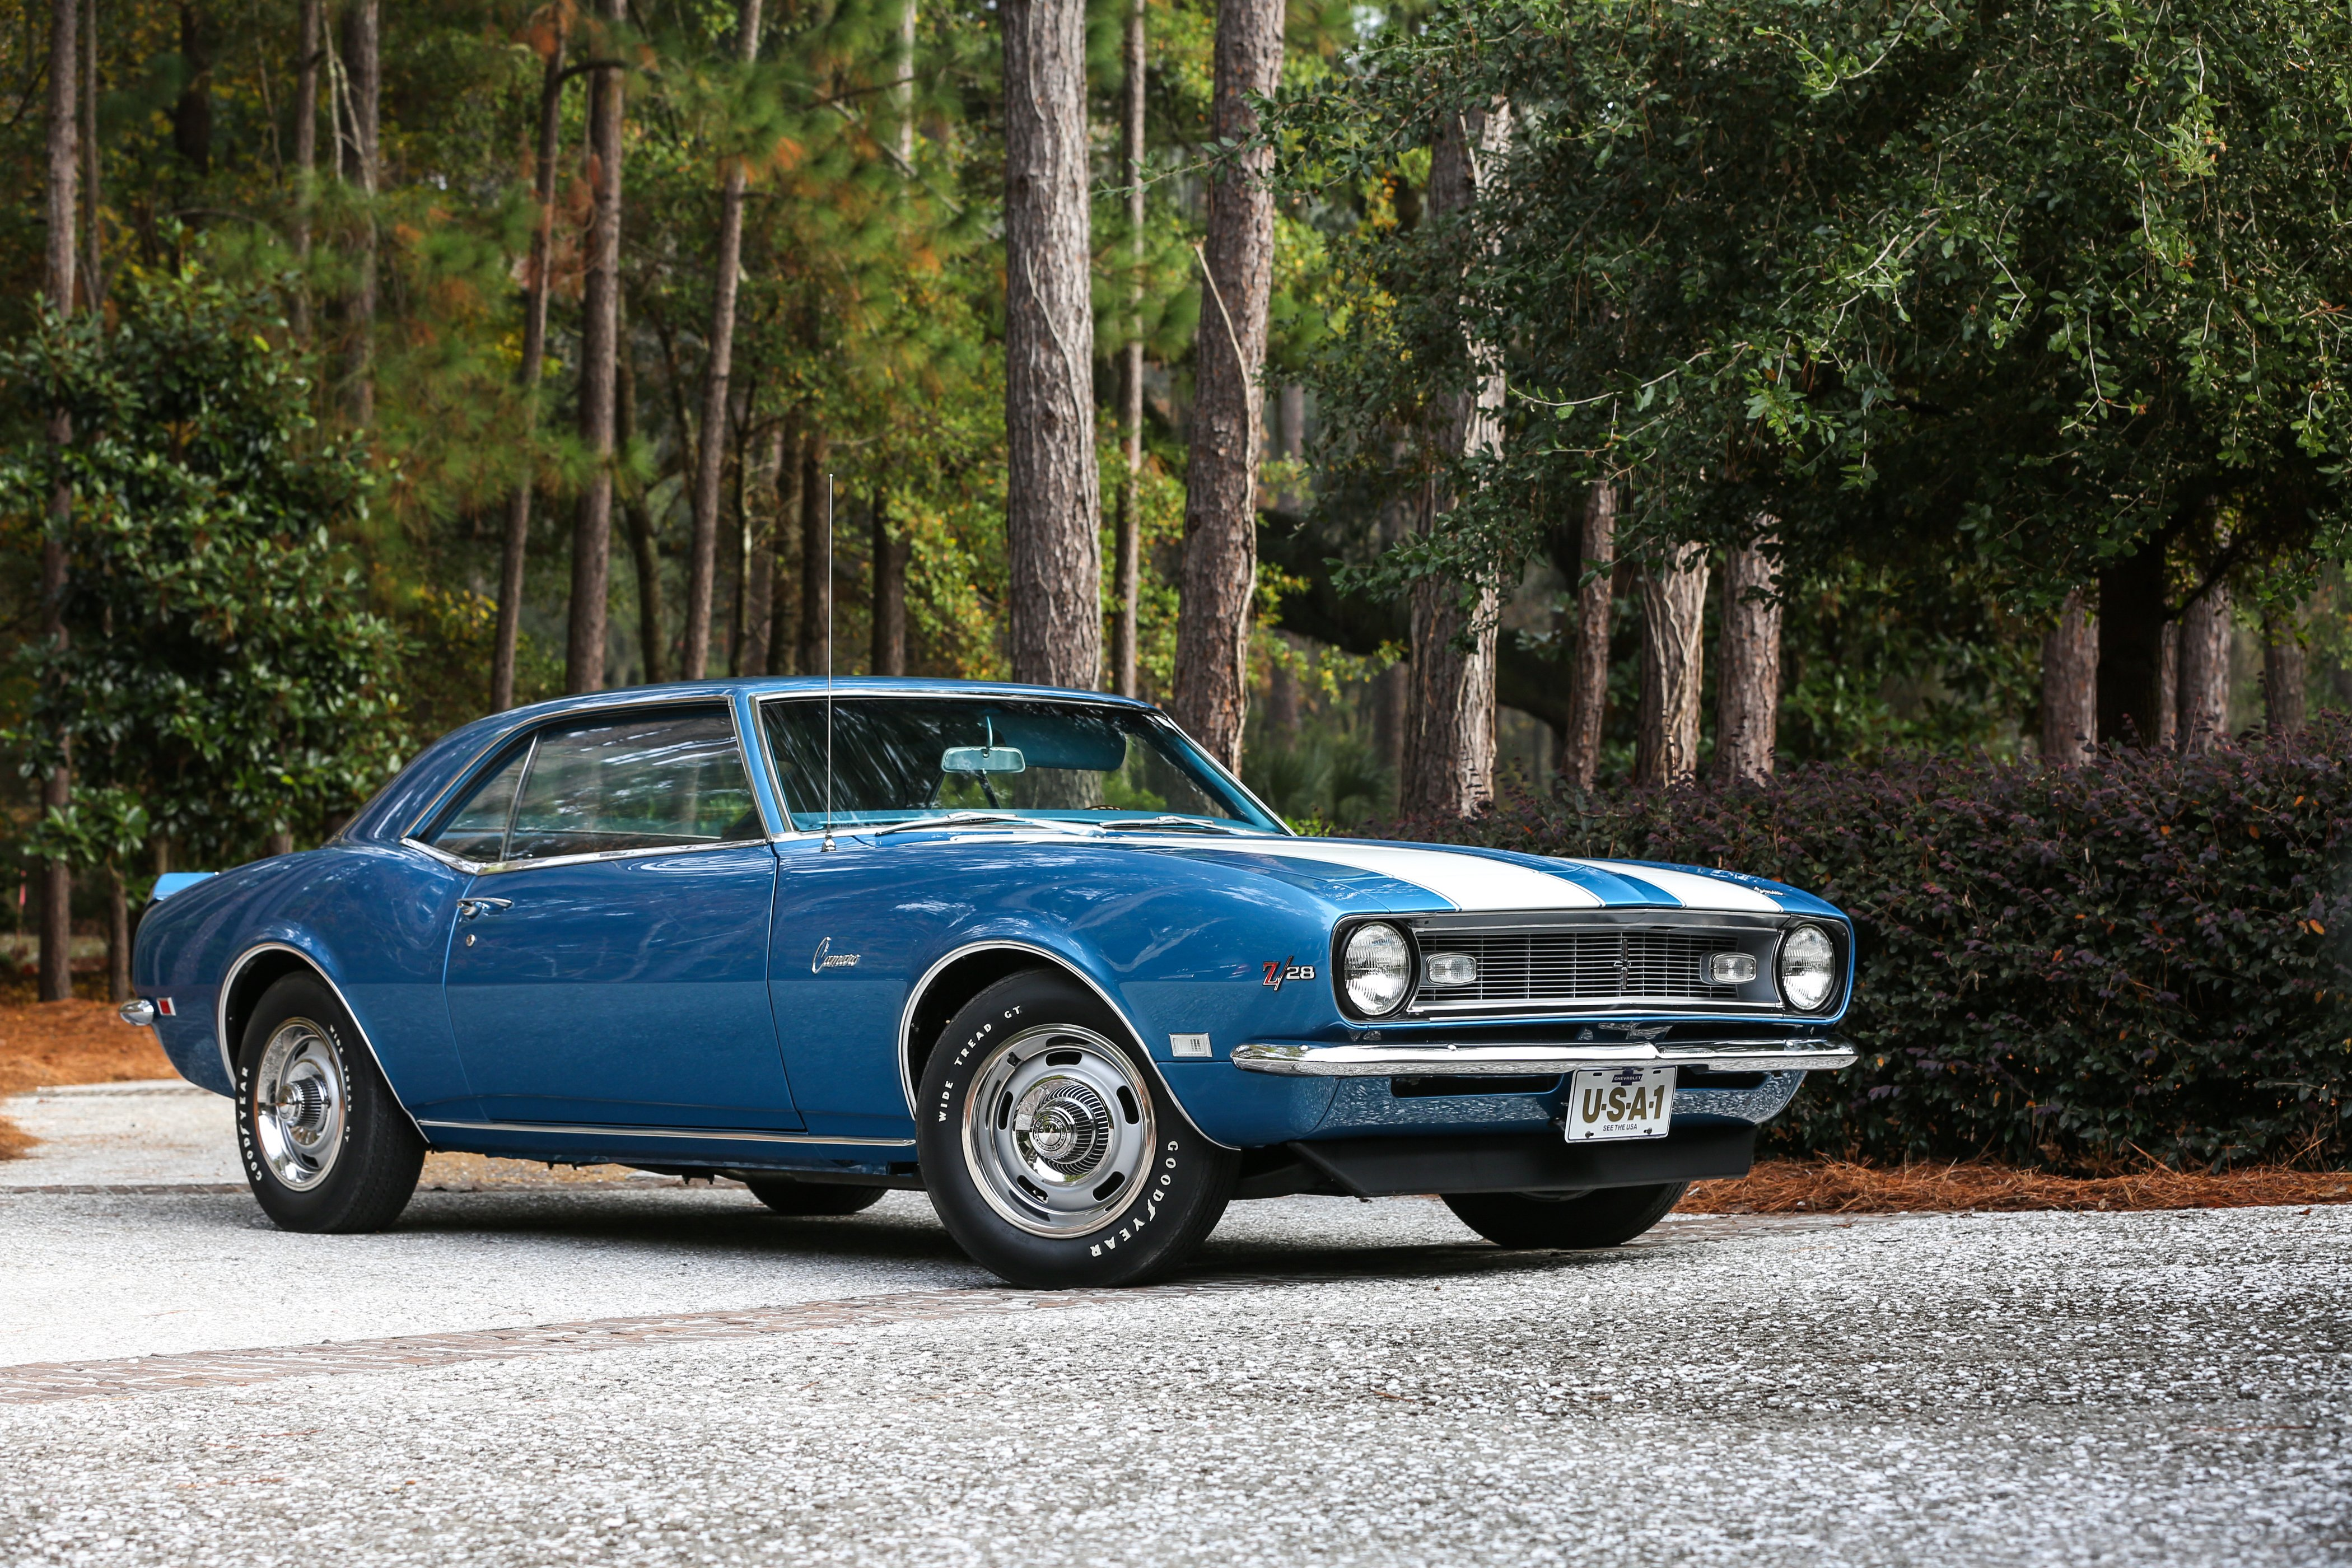 1968 Chevrolet Camaro Z28 Muscle Classic USA 4200x280002